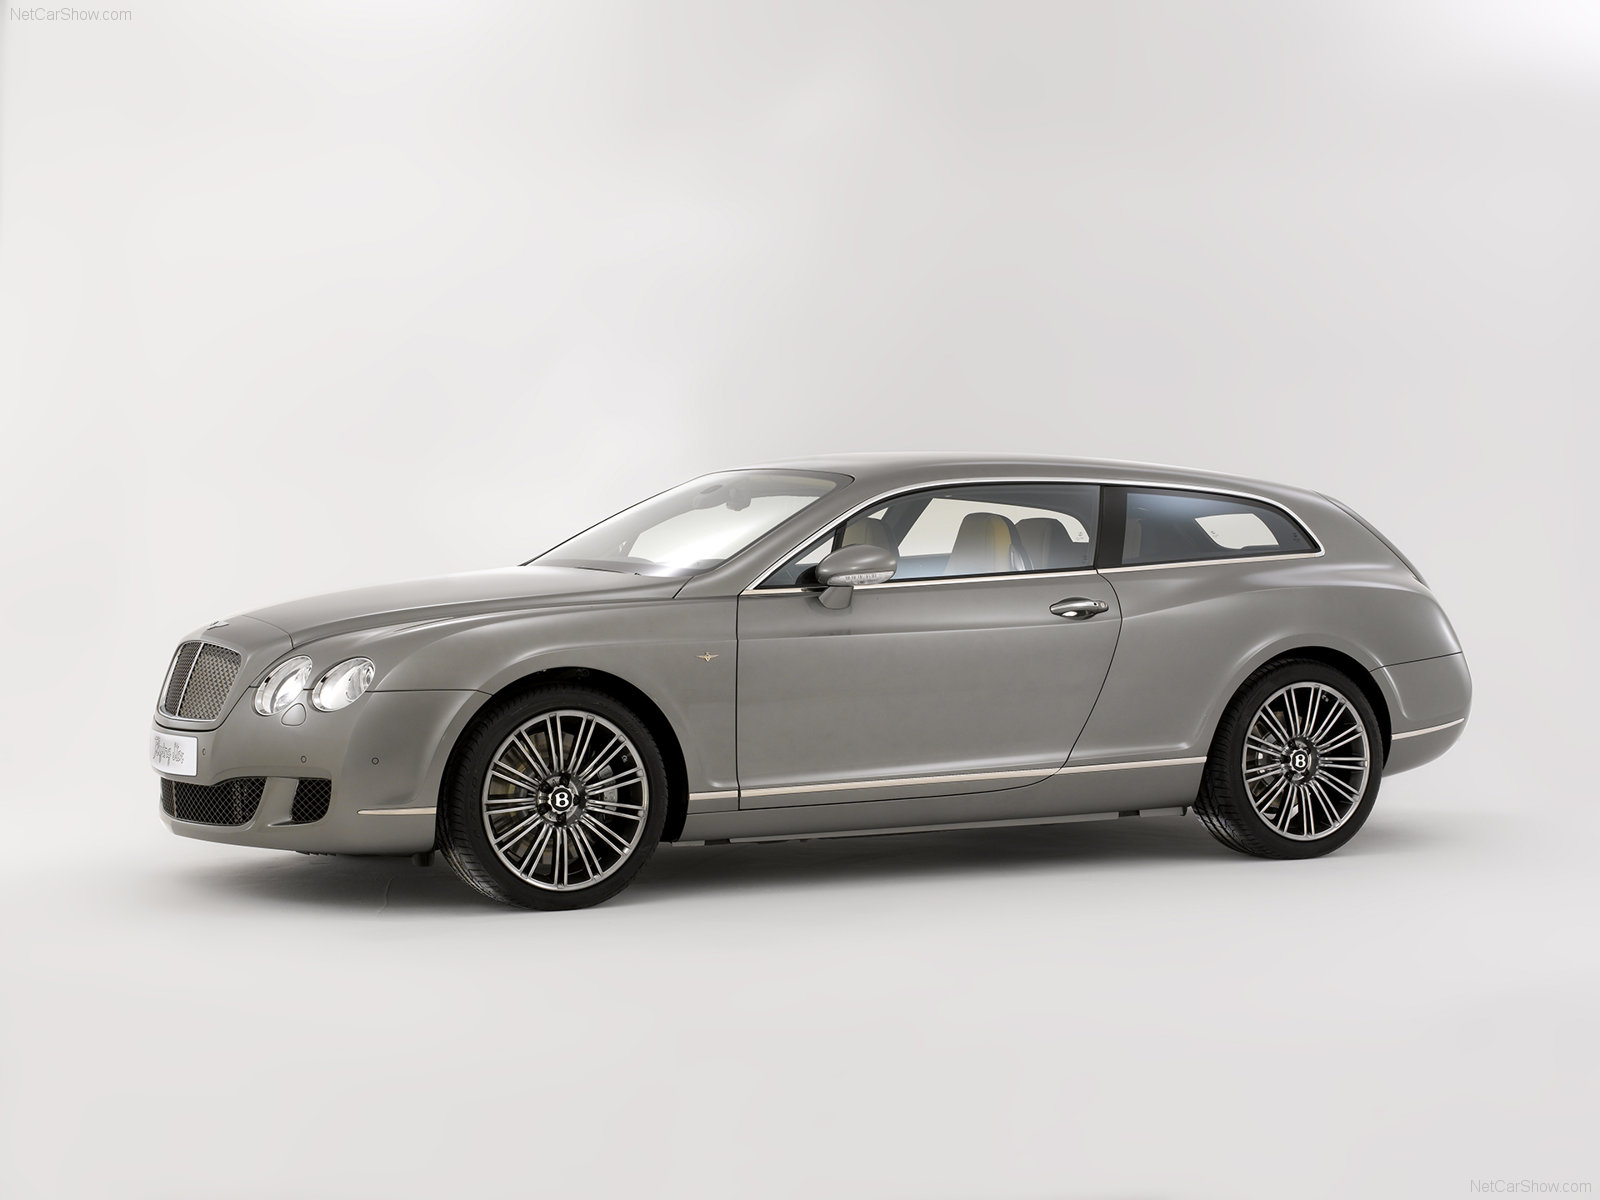 Bentley Continental Flying Star 2010 1600x1200 wallpaper 02 2010 Bentley Continental Flying Star